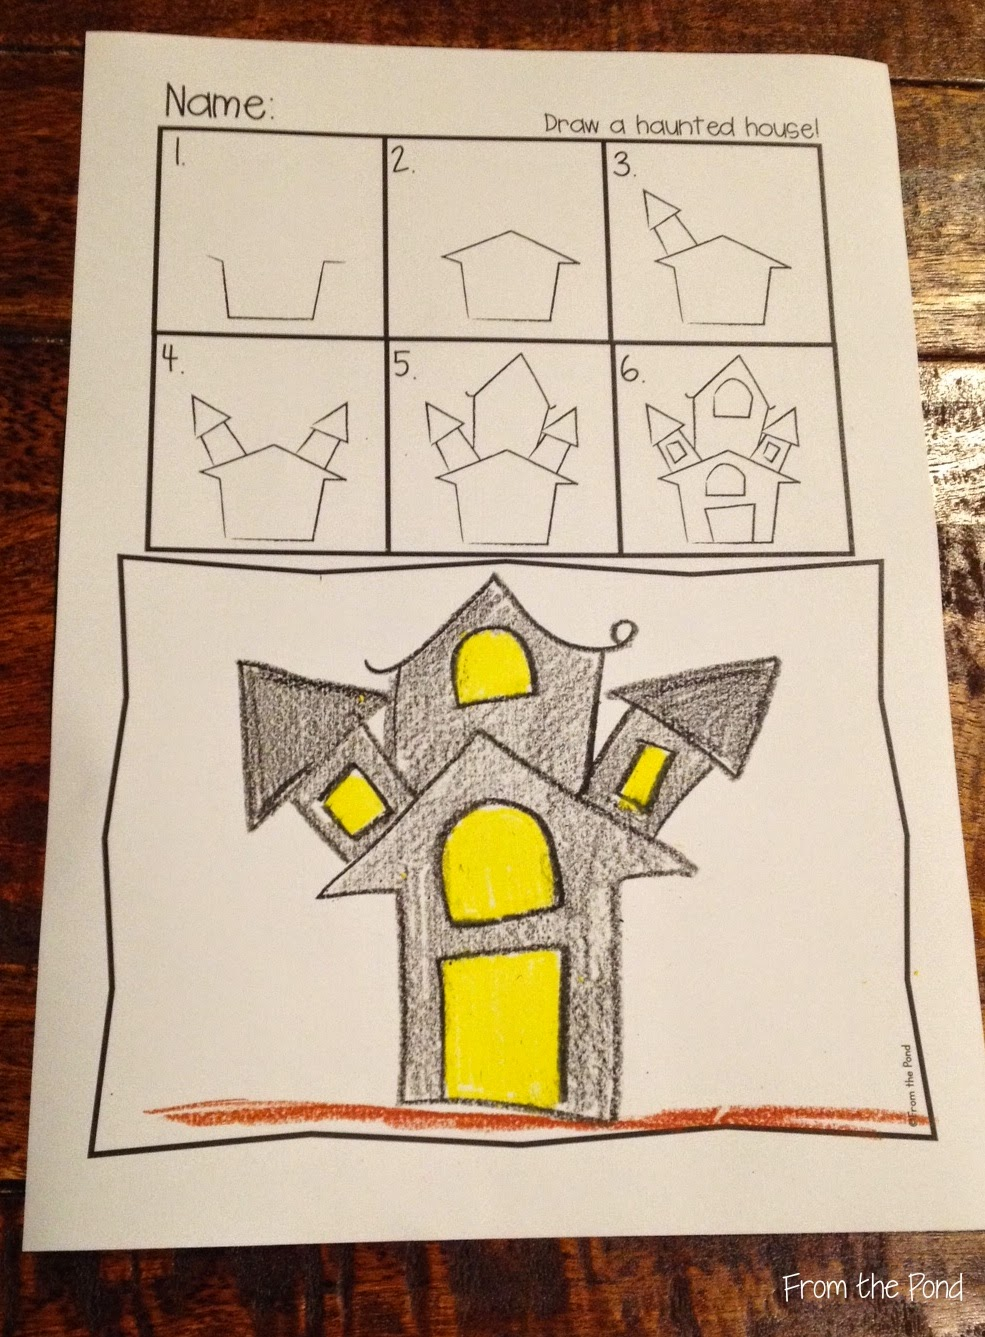 Drawn haunted house line drawing simple House Haunted House Free New